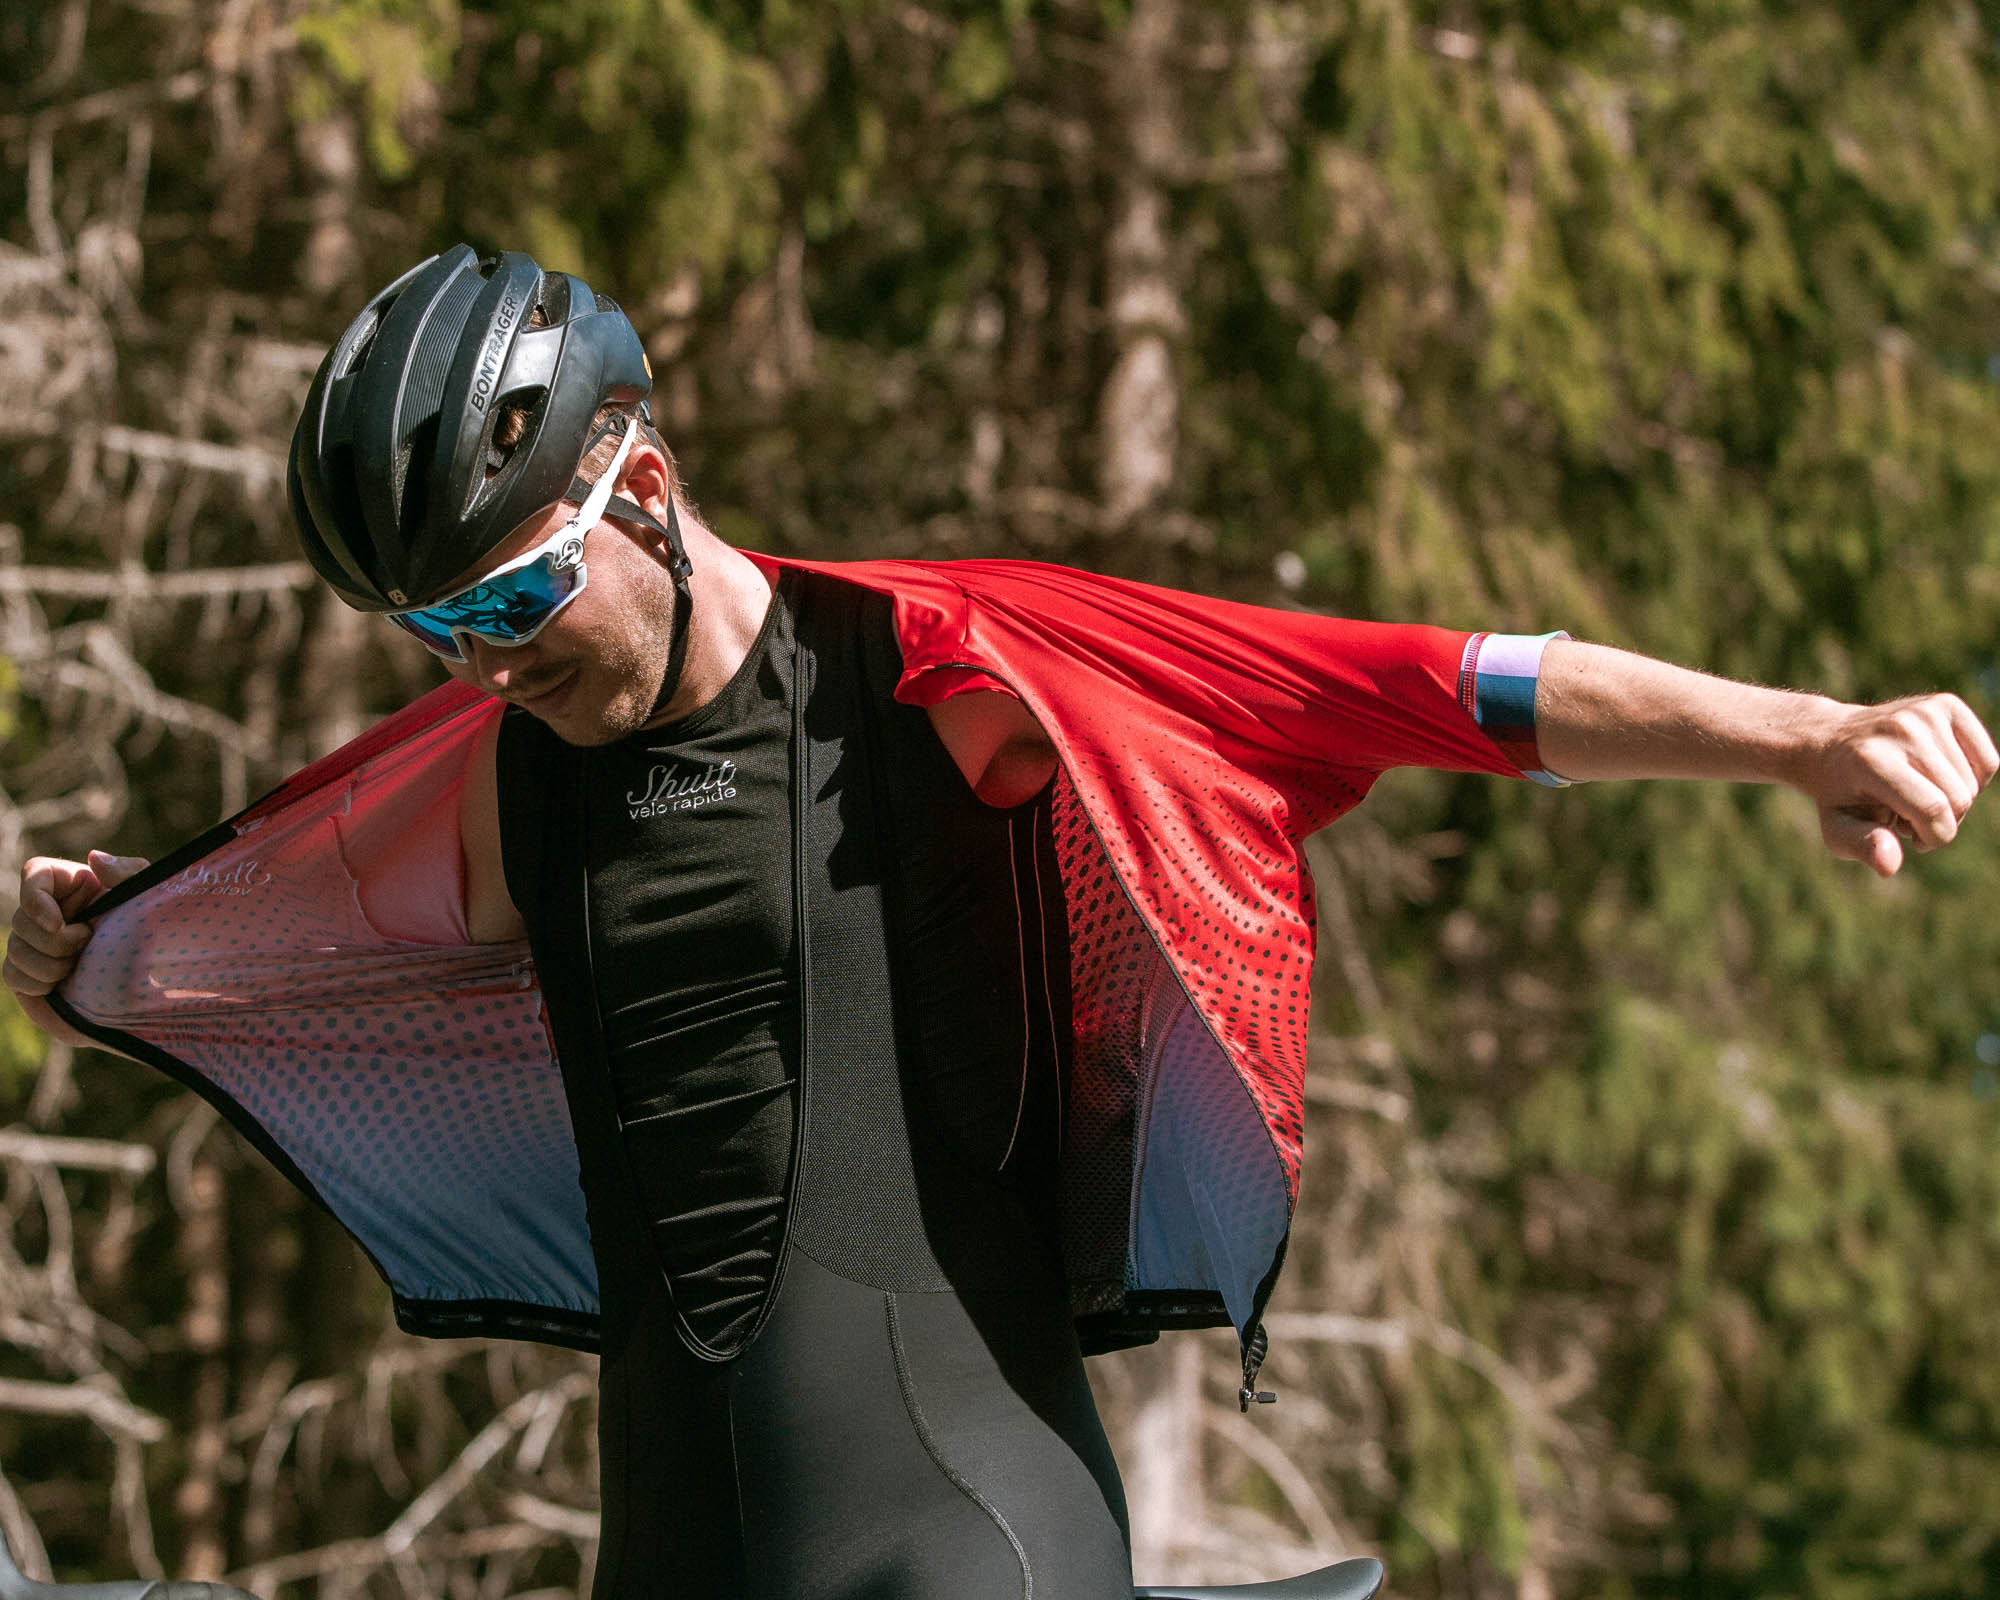 New cycling jersey designs